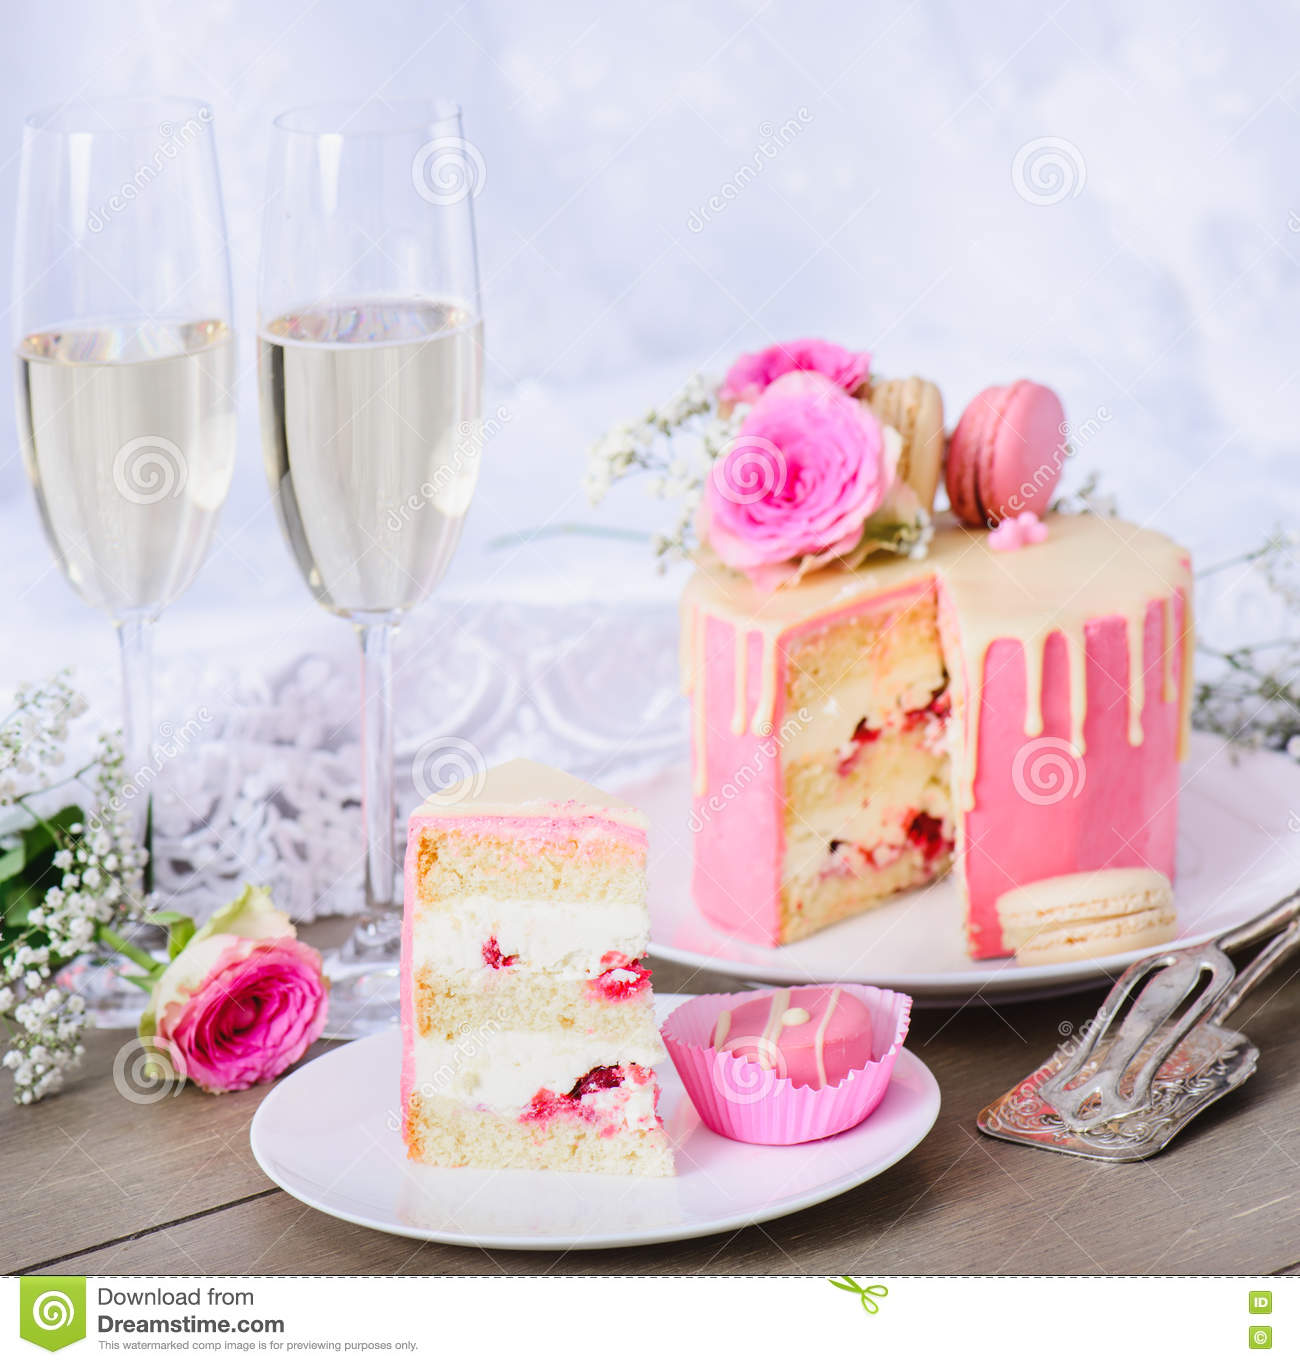 Wedding Cake With Pink Frosting Stock Image - Image of beautiful ...